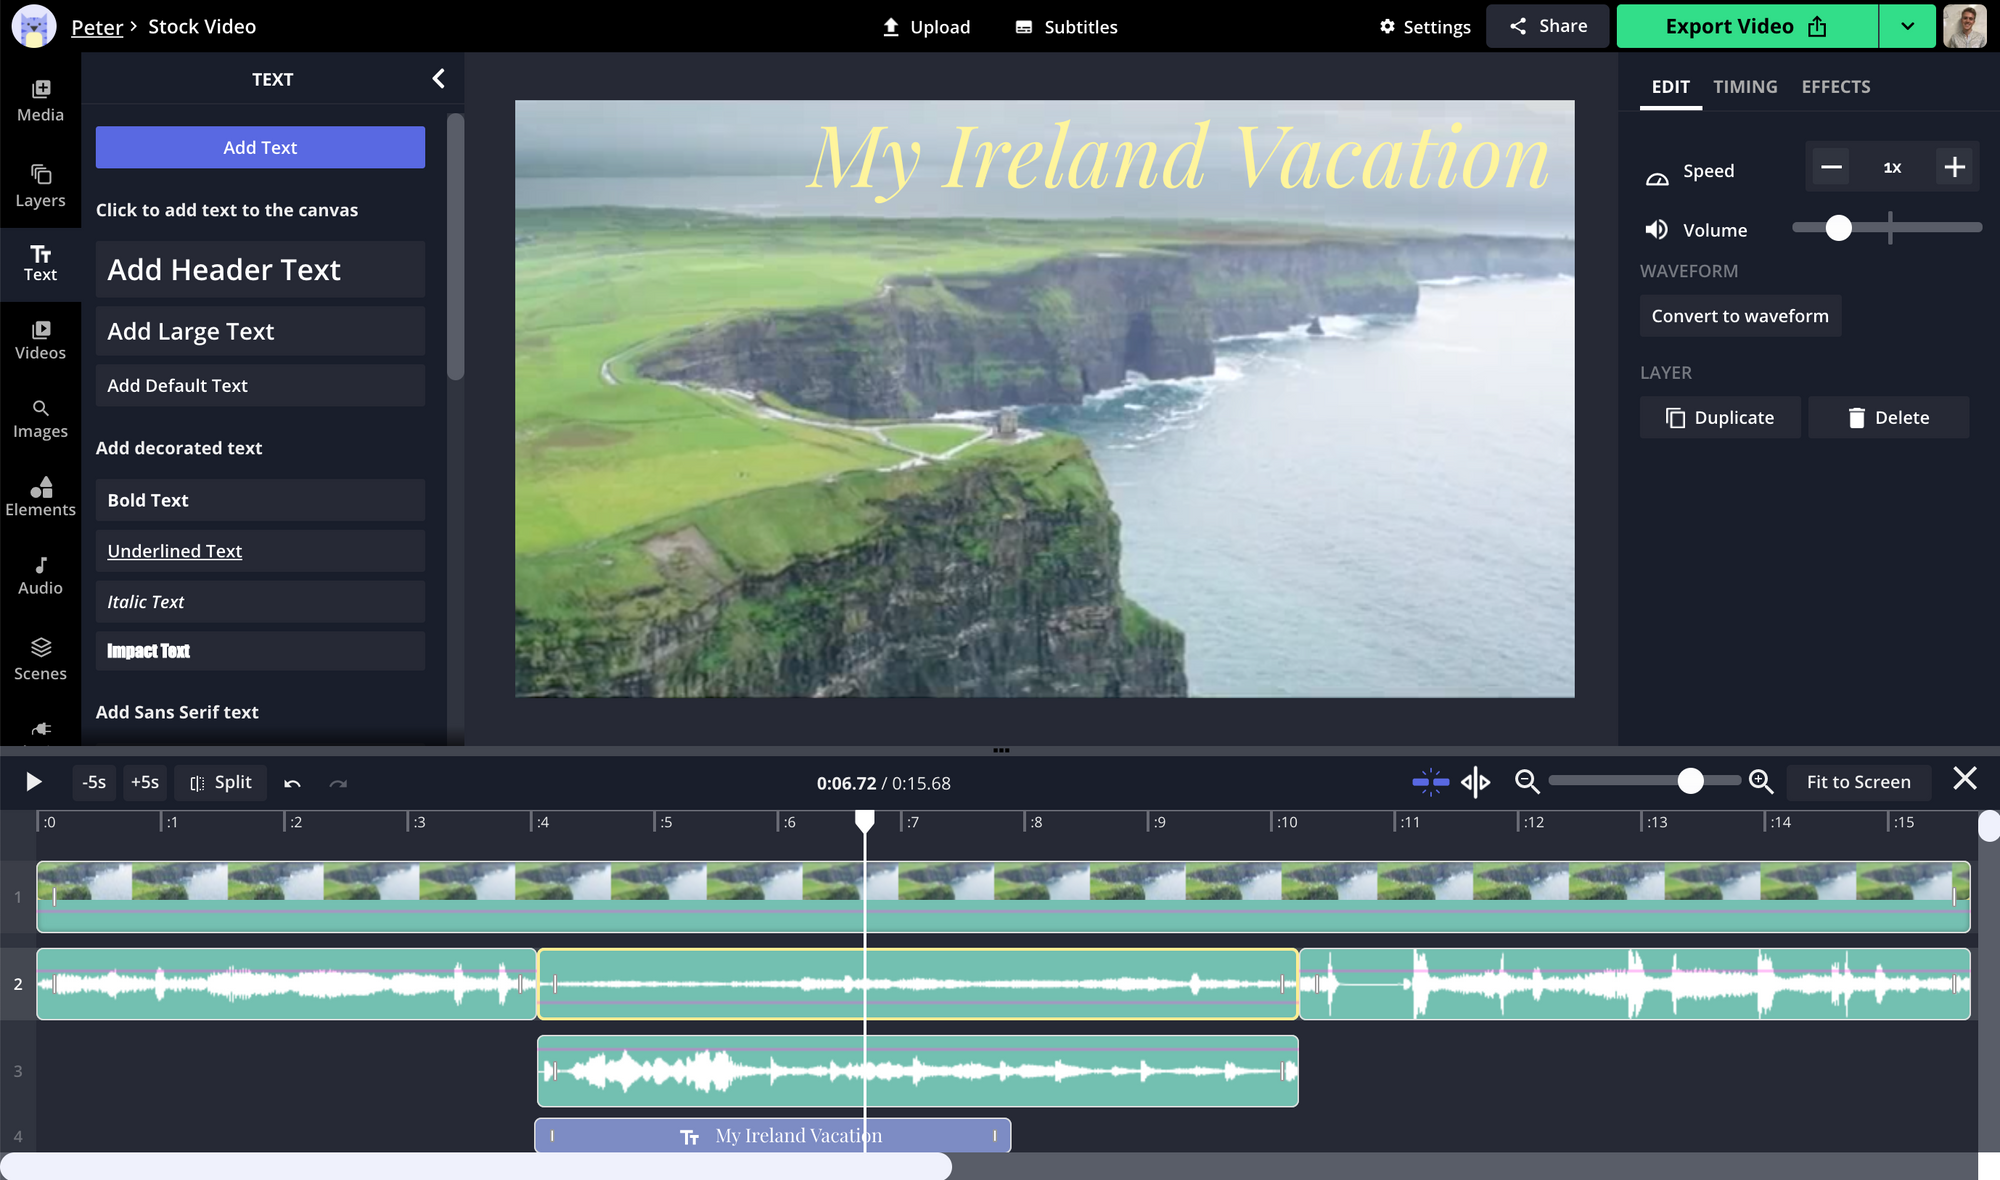 A screenshot of an audio track being edited in the Kapwing Studio.